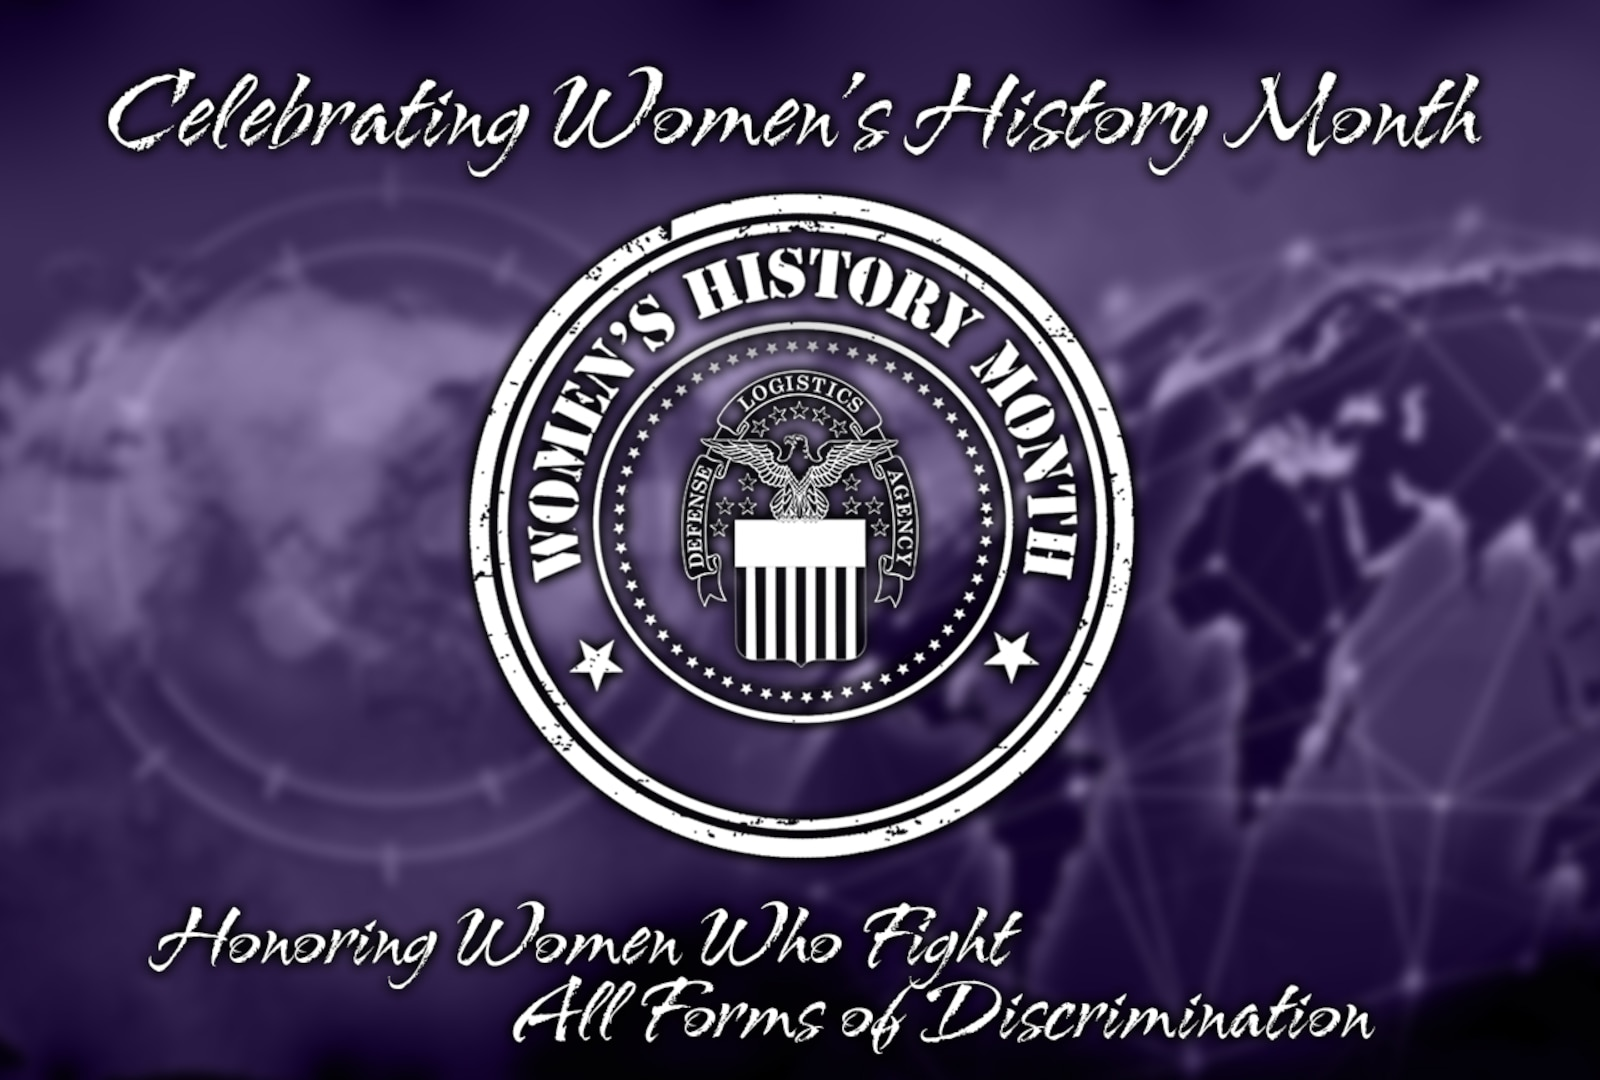 March is Women's History Month, but we can continue learning about and reflecting on the progress women have made throughout the year. Graphic by Paul Crank